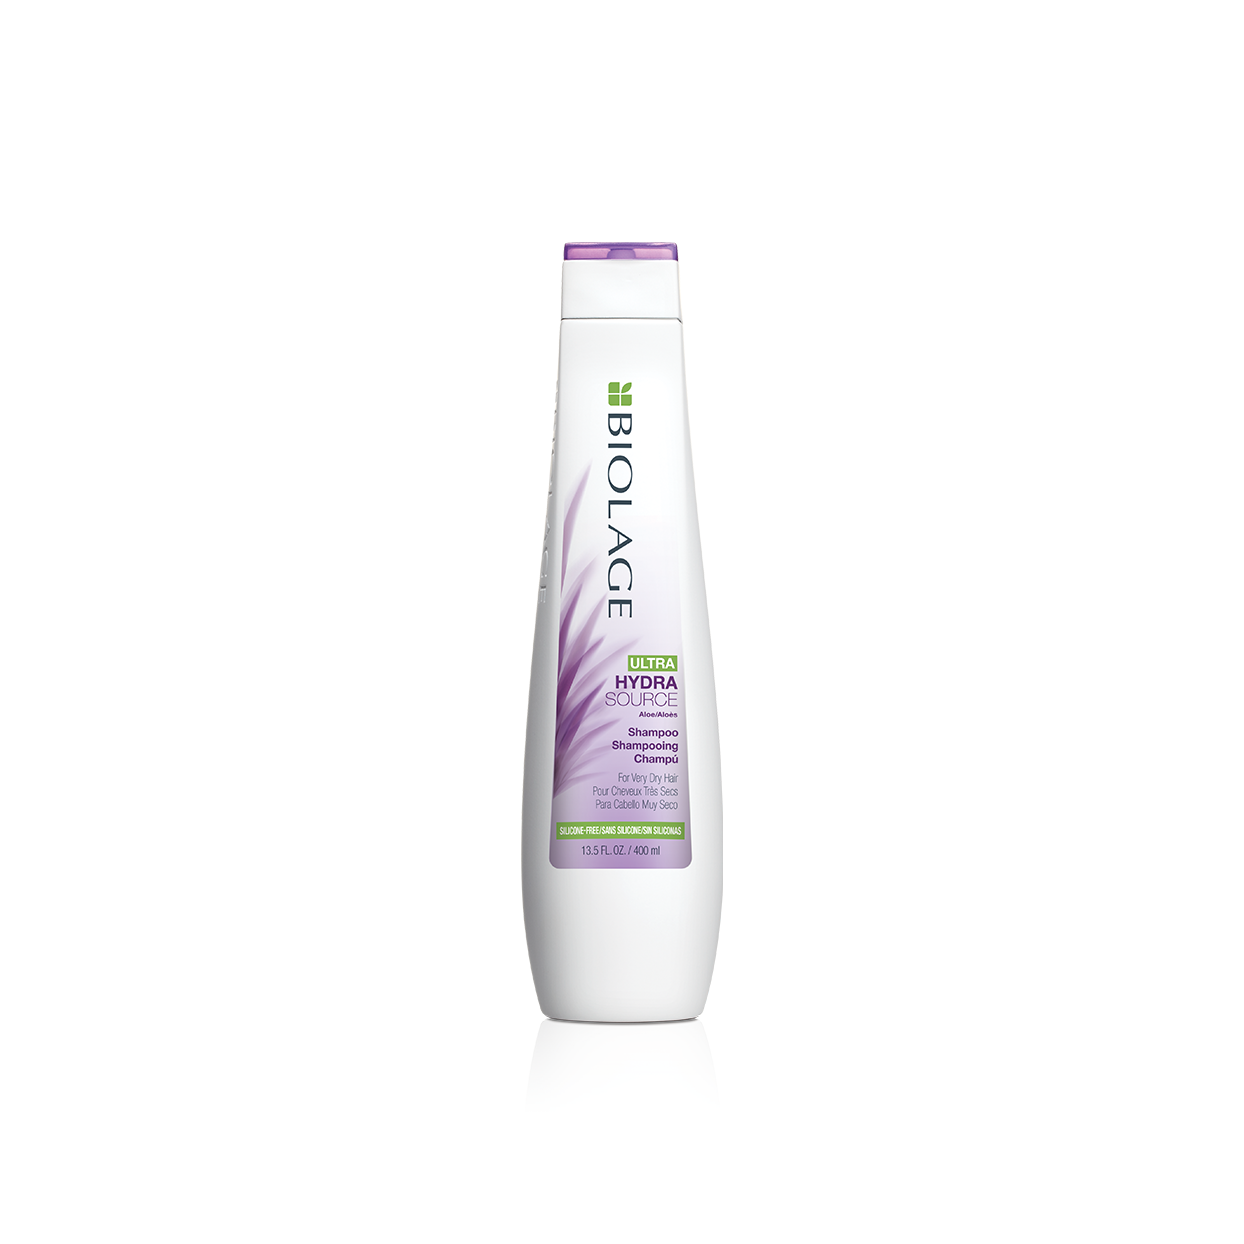 Biolage HydraSource Dry Hair Shampoo Hydrating Shampoo for Dry Hair